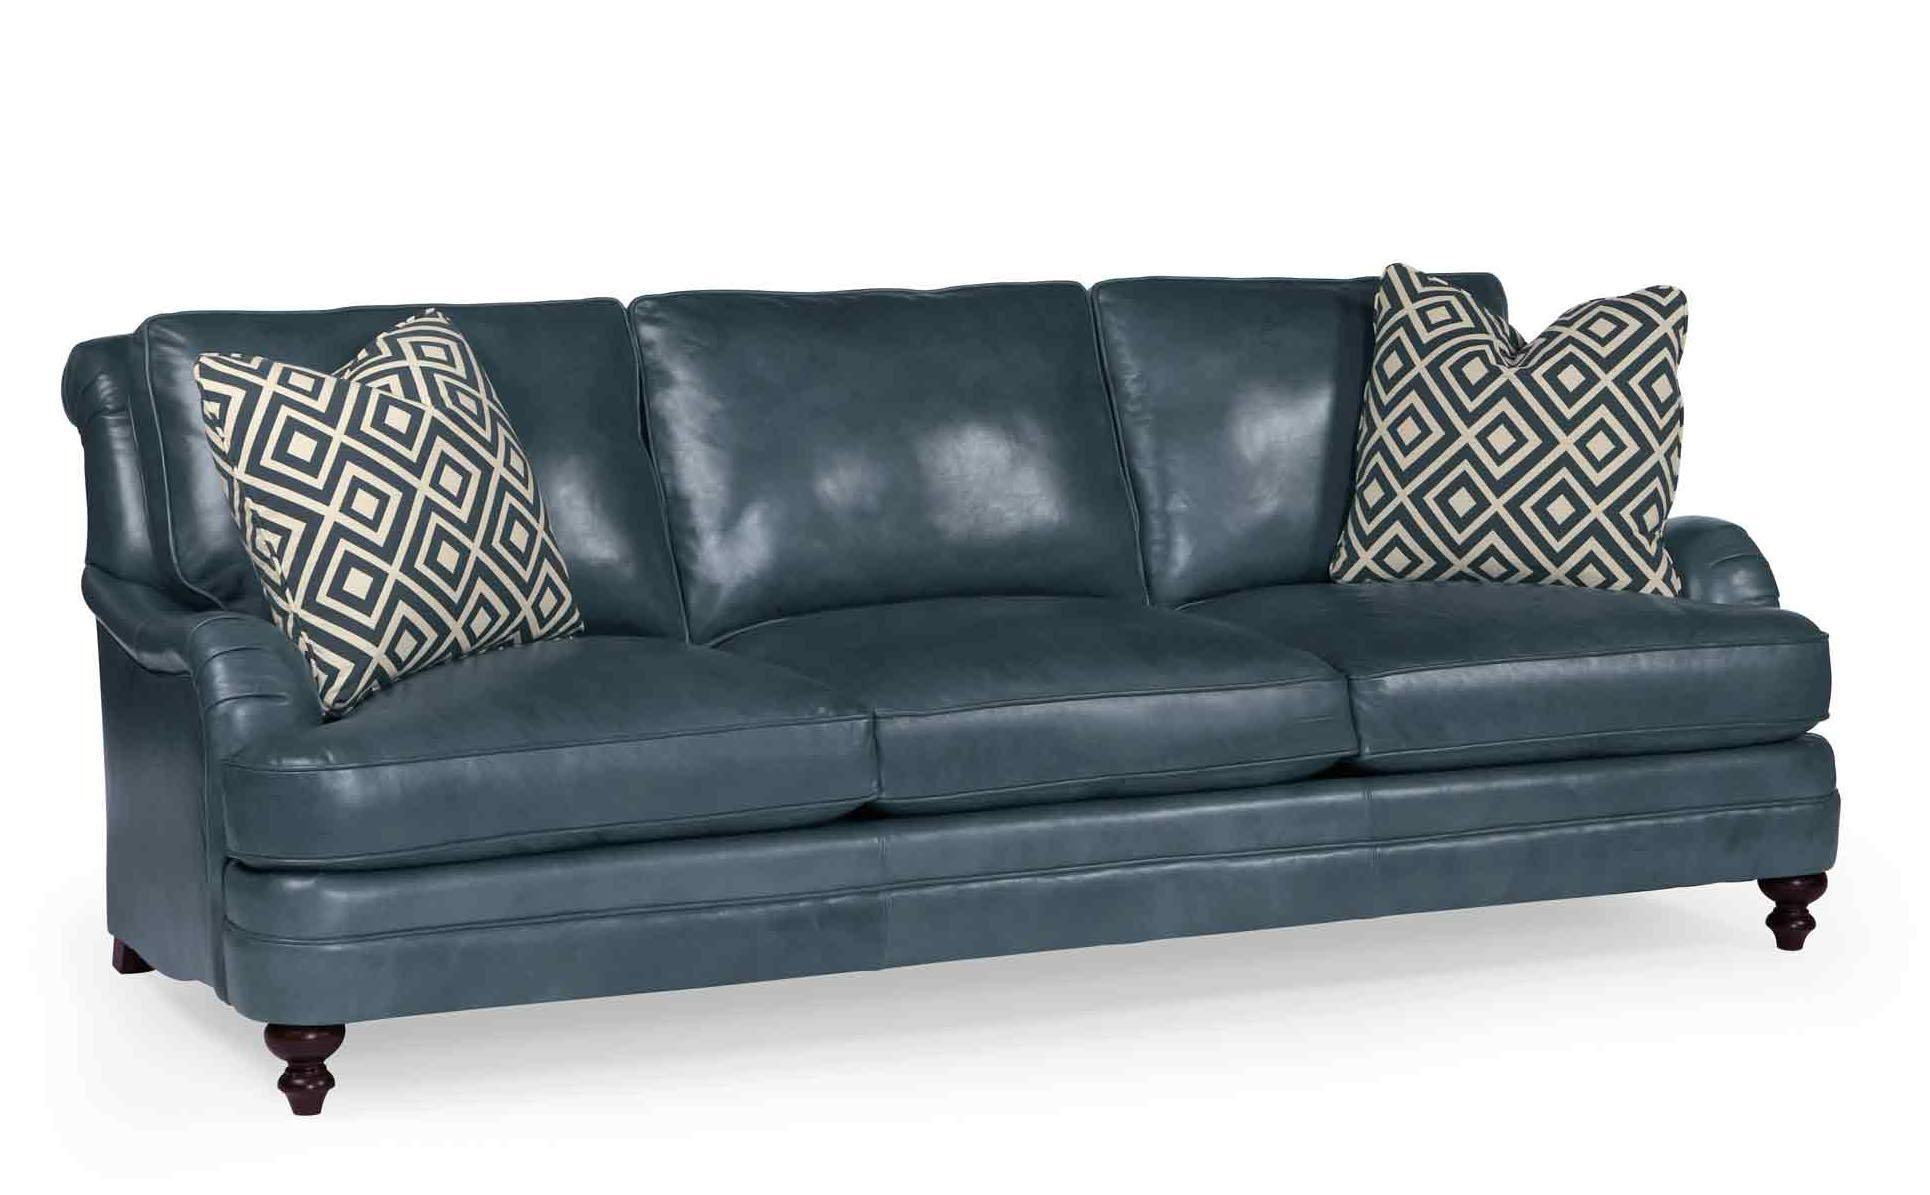 blue leather sofas two tone sectional sofa recliners couch images frompo 1